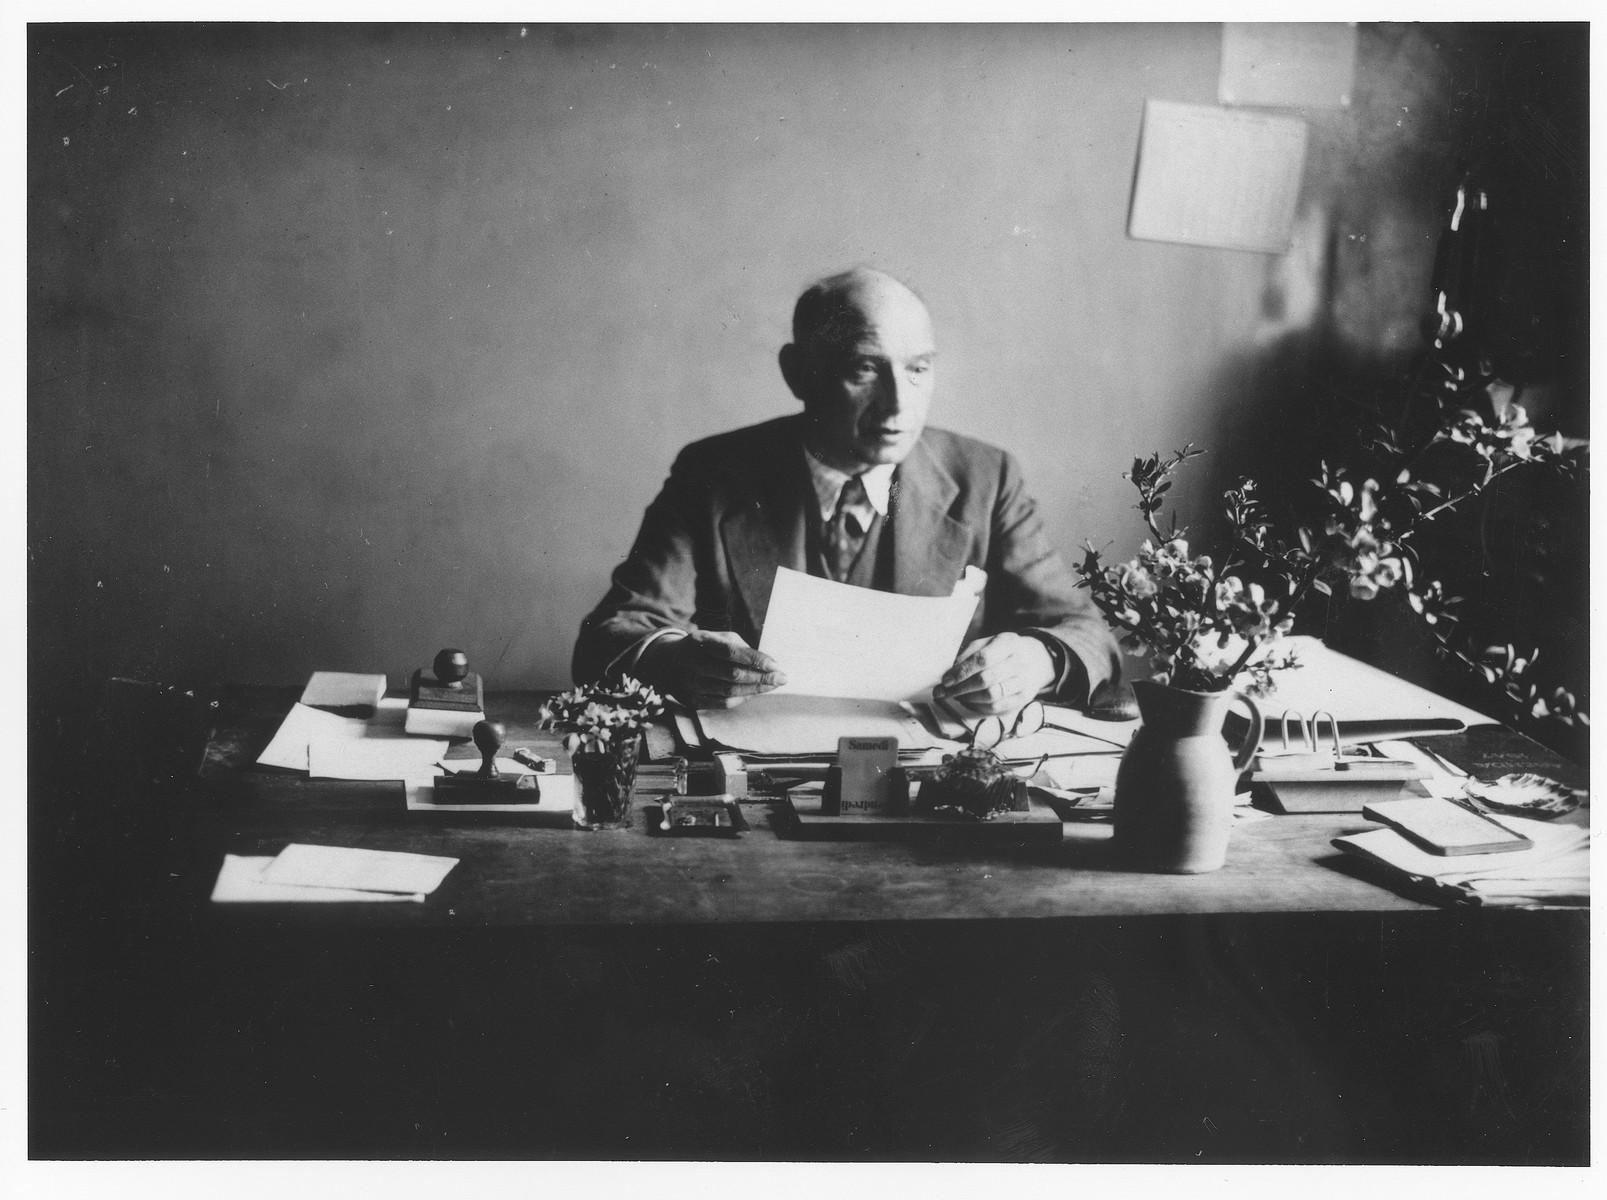 Mr. Dreyfus, the director of Saint Germain children's home, sits at his desk in his office.